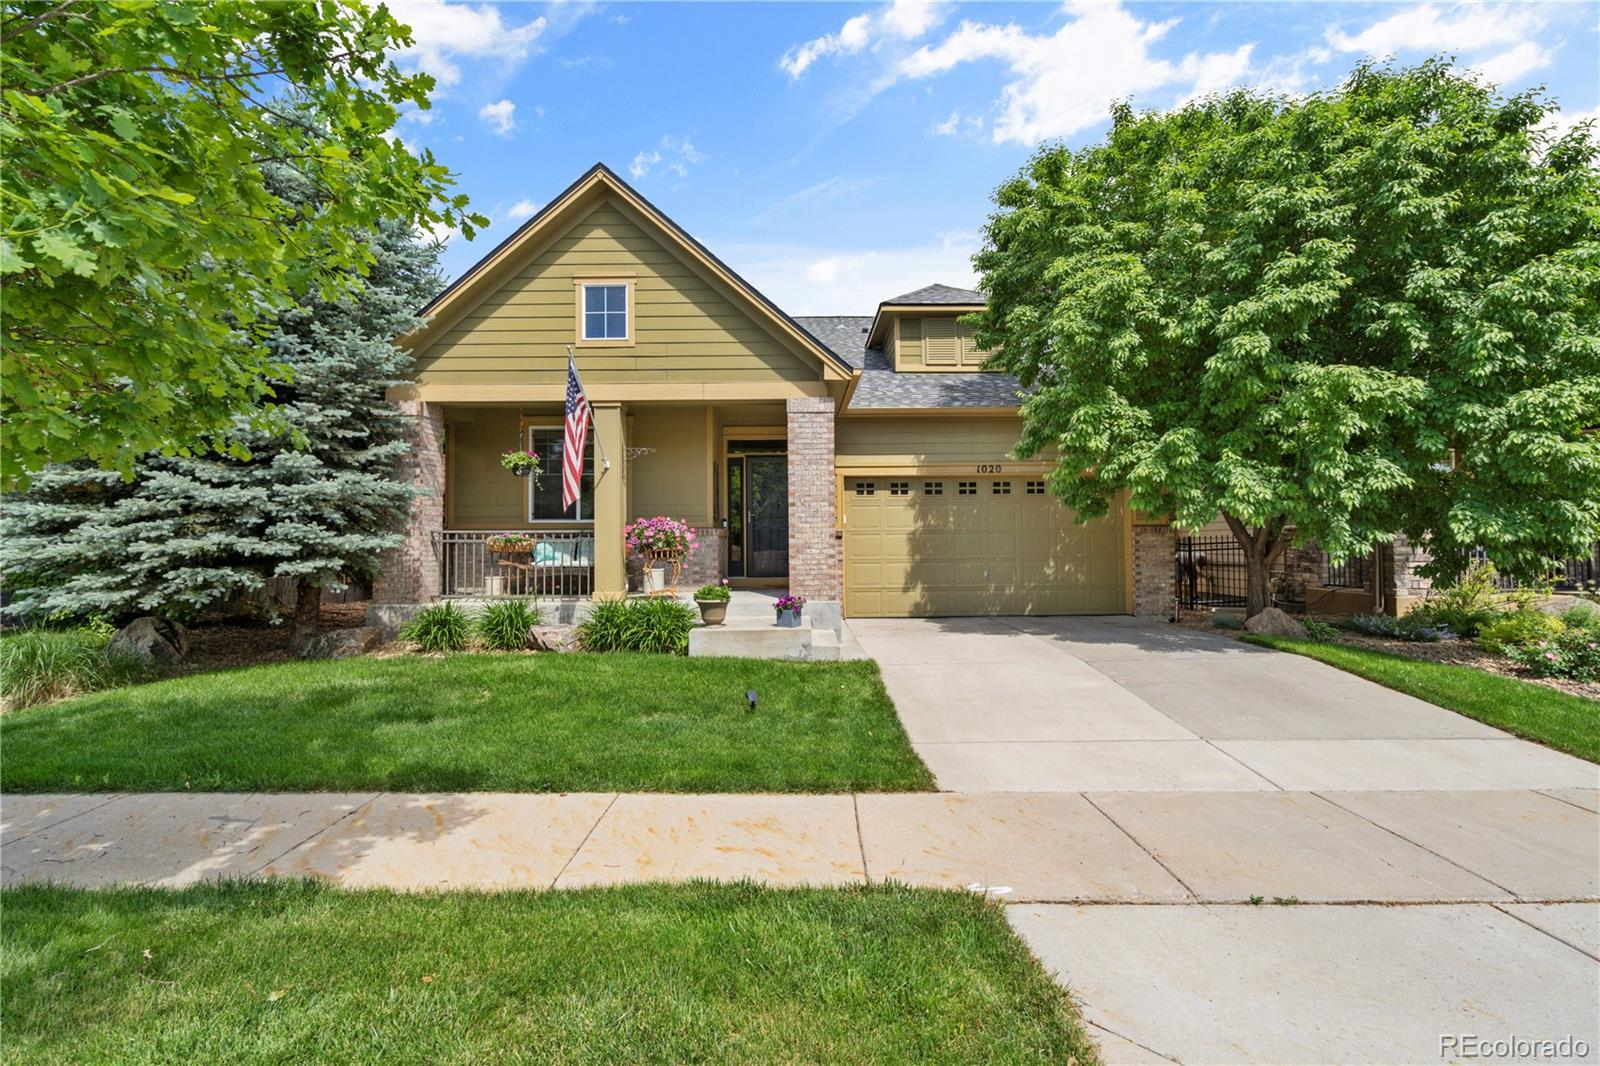 1020 Burrowing Owl Drive, Fort Collins, CO 80525 - #: 4701720